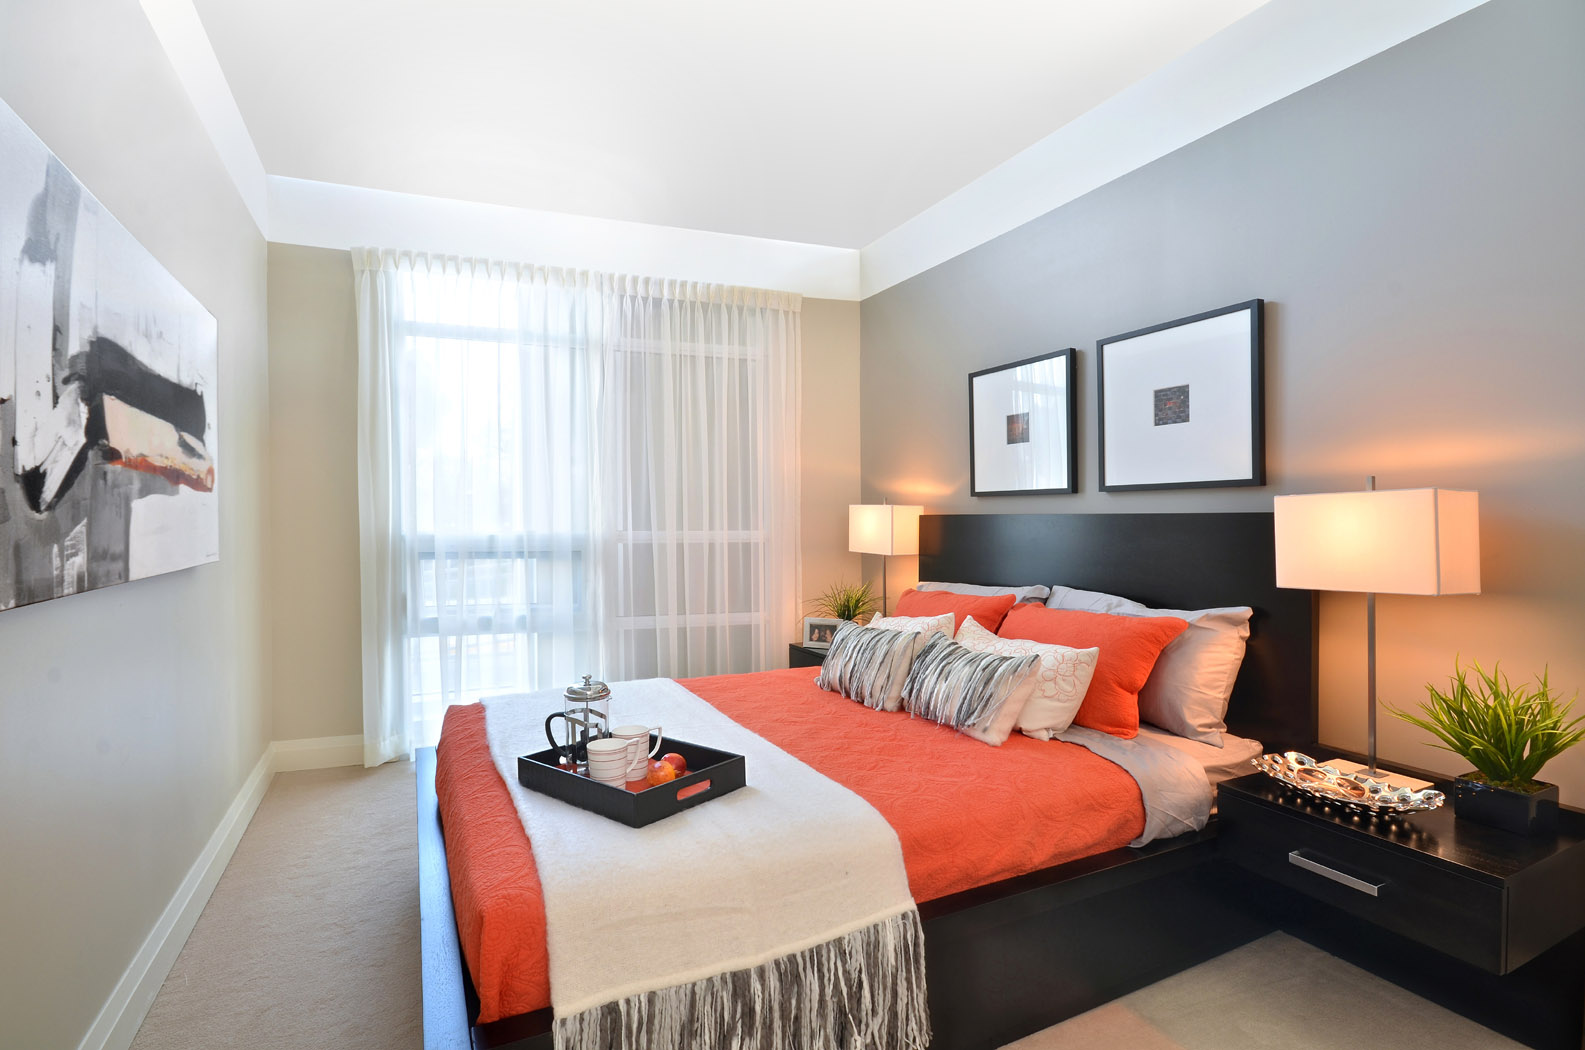 FALL IN LOVE WITH THIS MODEL SUITE! | IN THE CONDO KNOW on New Model Bedroom Design  id=35828